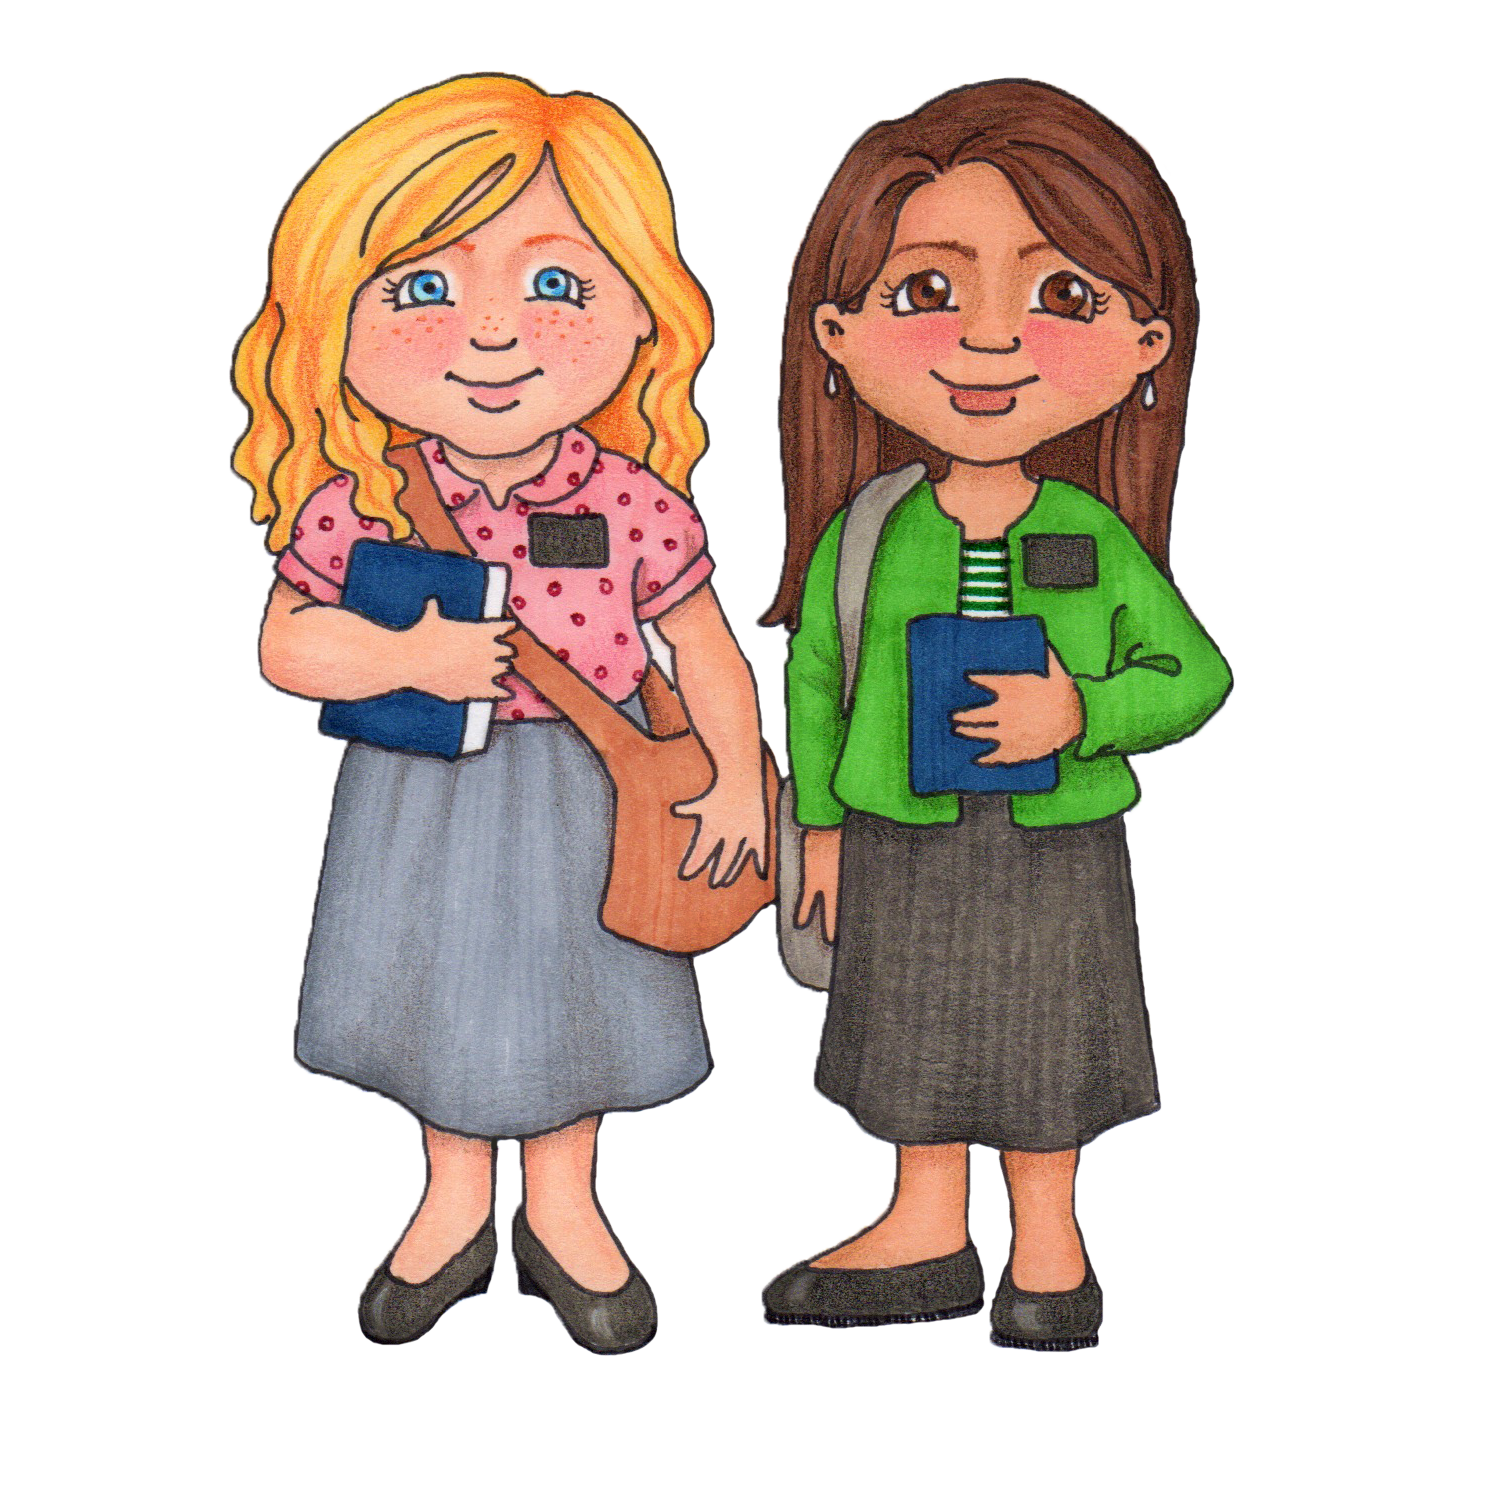 Sister clipart activity day. Free cliparts download clip